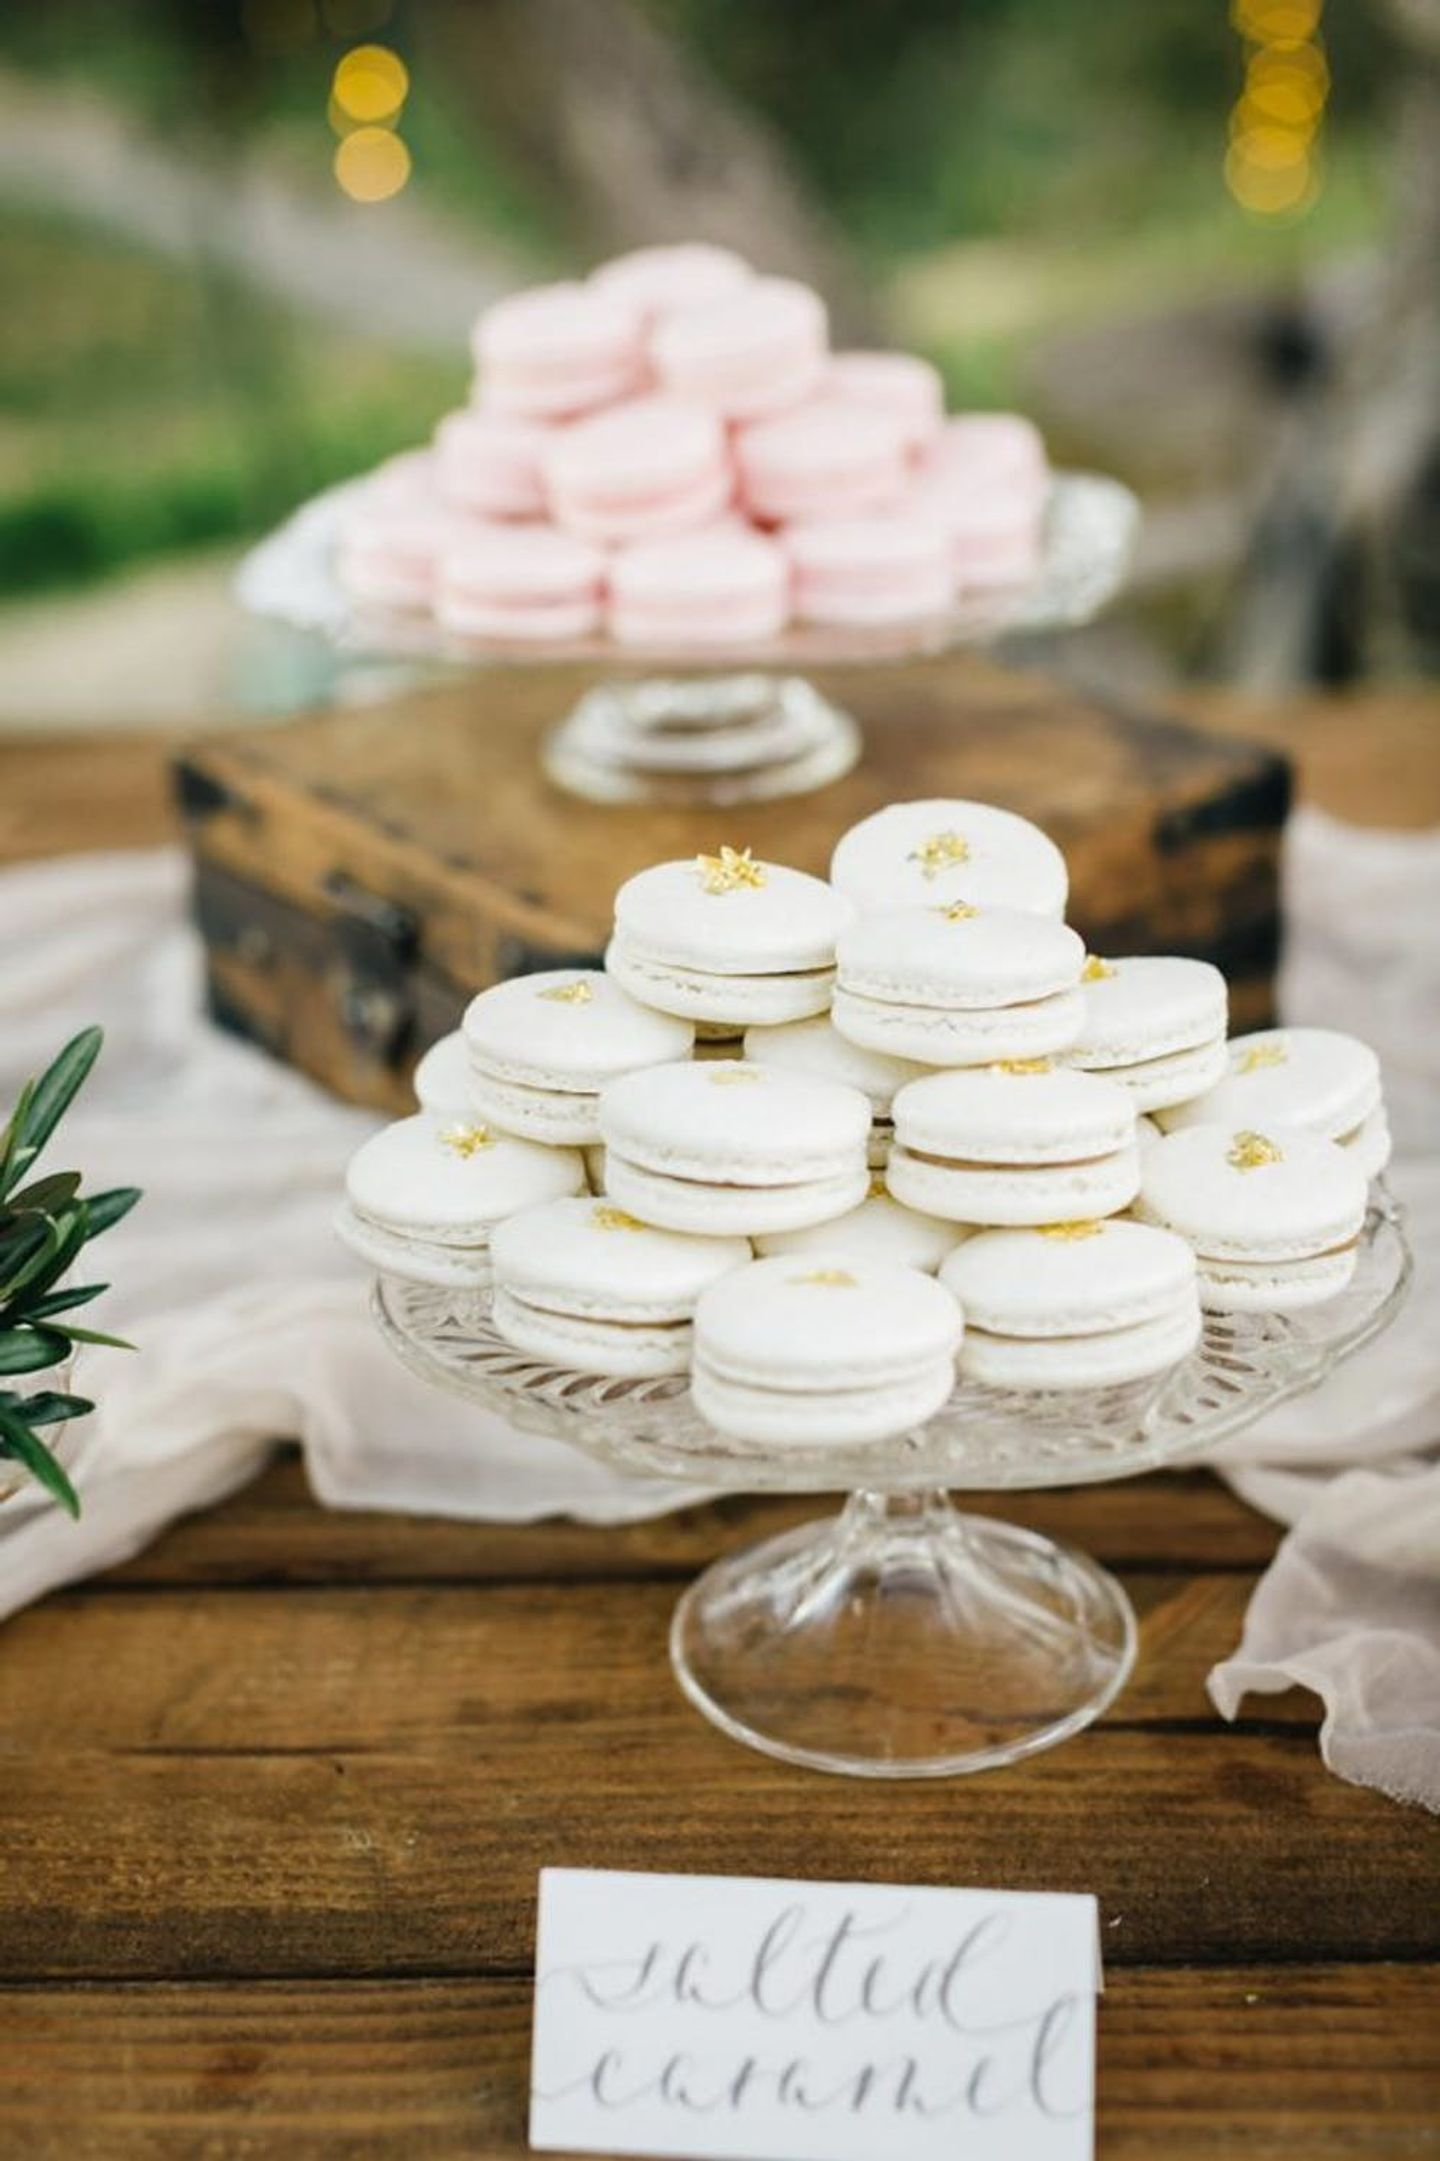 These NonTraditional Desserts Are Replacing Wedding Cakes